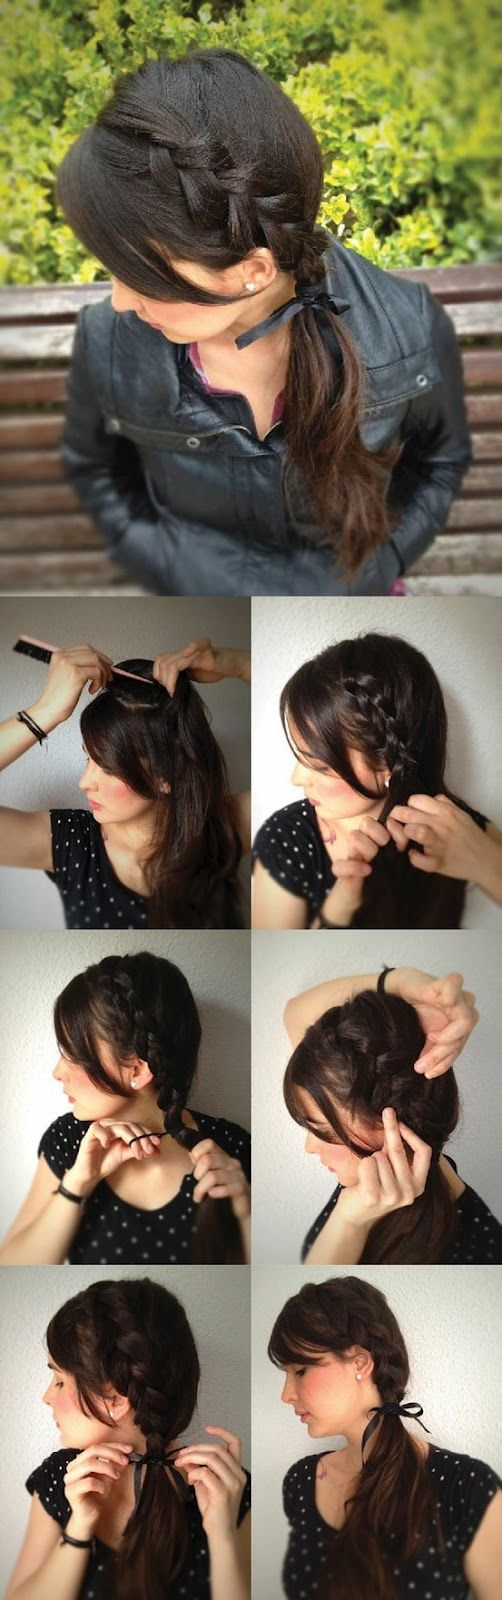 Diy: 20 Fab Hair Styles You Can Try At Home  The Perfect Line Side Braid